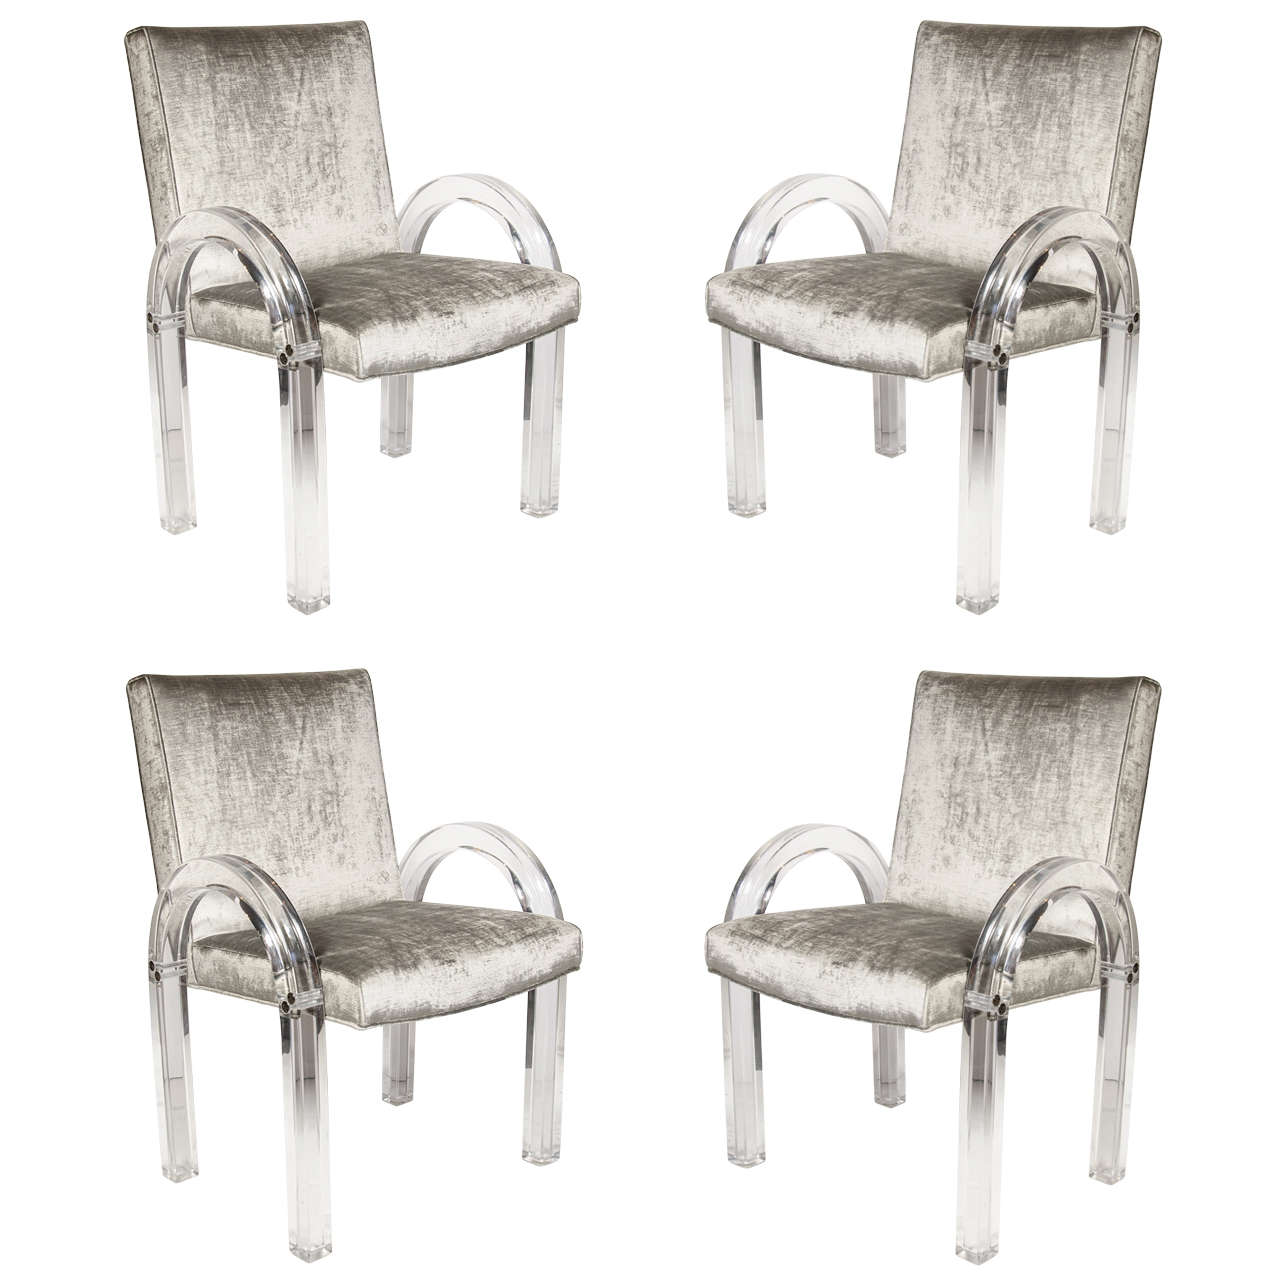 u shaped chair arrangement headstand set of four 39u 39 lucite dining chairs by charles